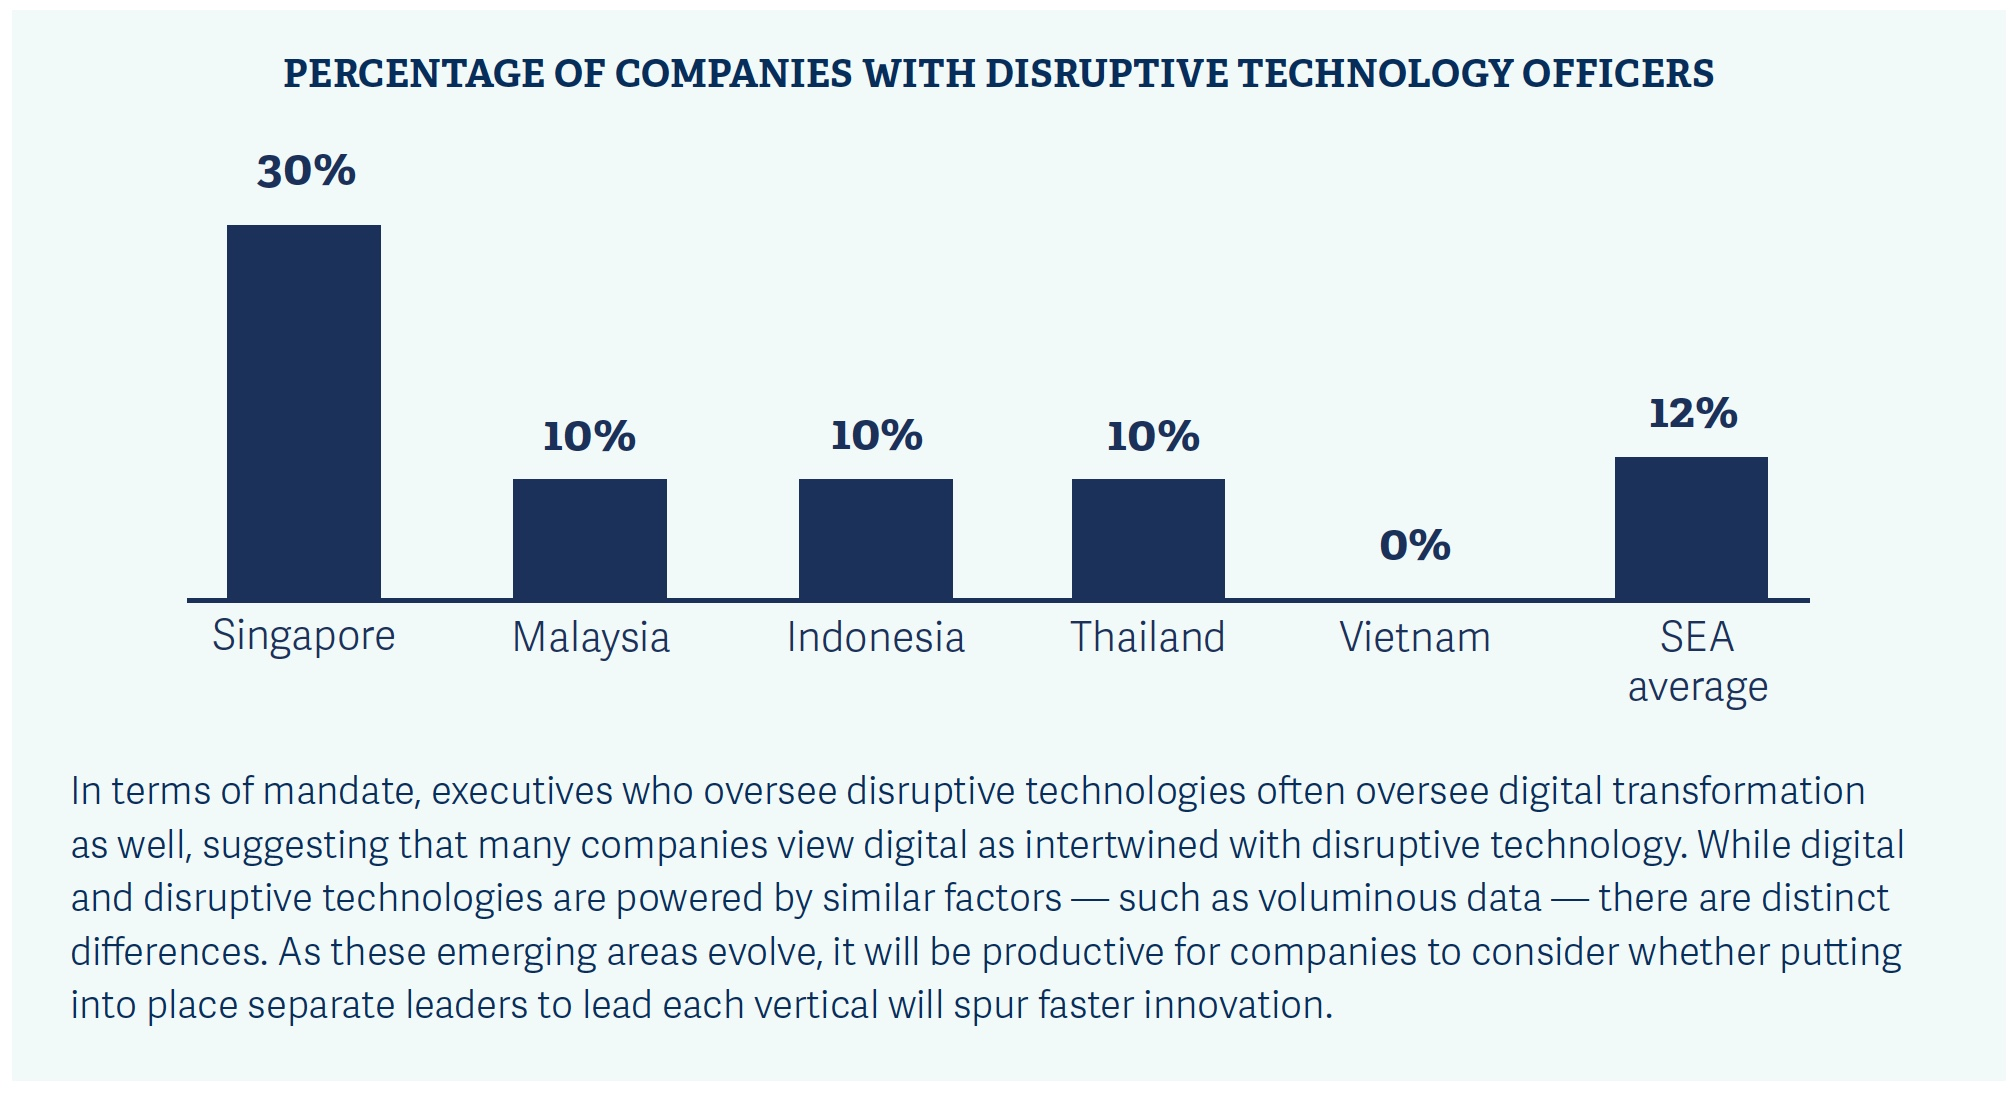 disruptive technology officers in southeast asia 1.jpeg